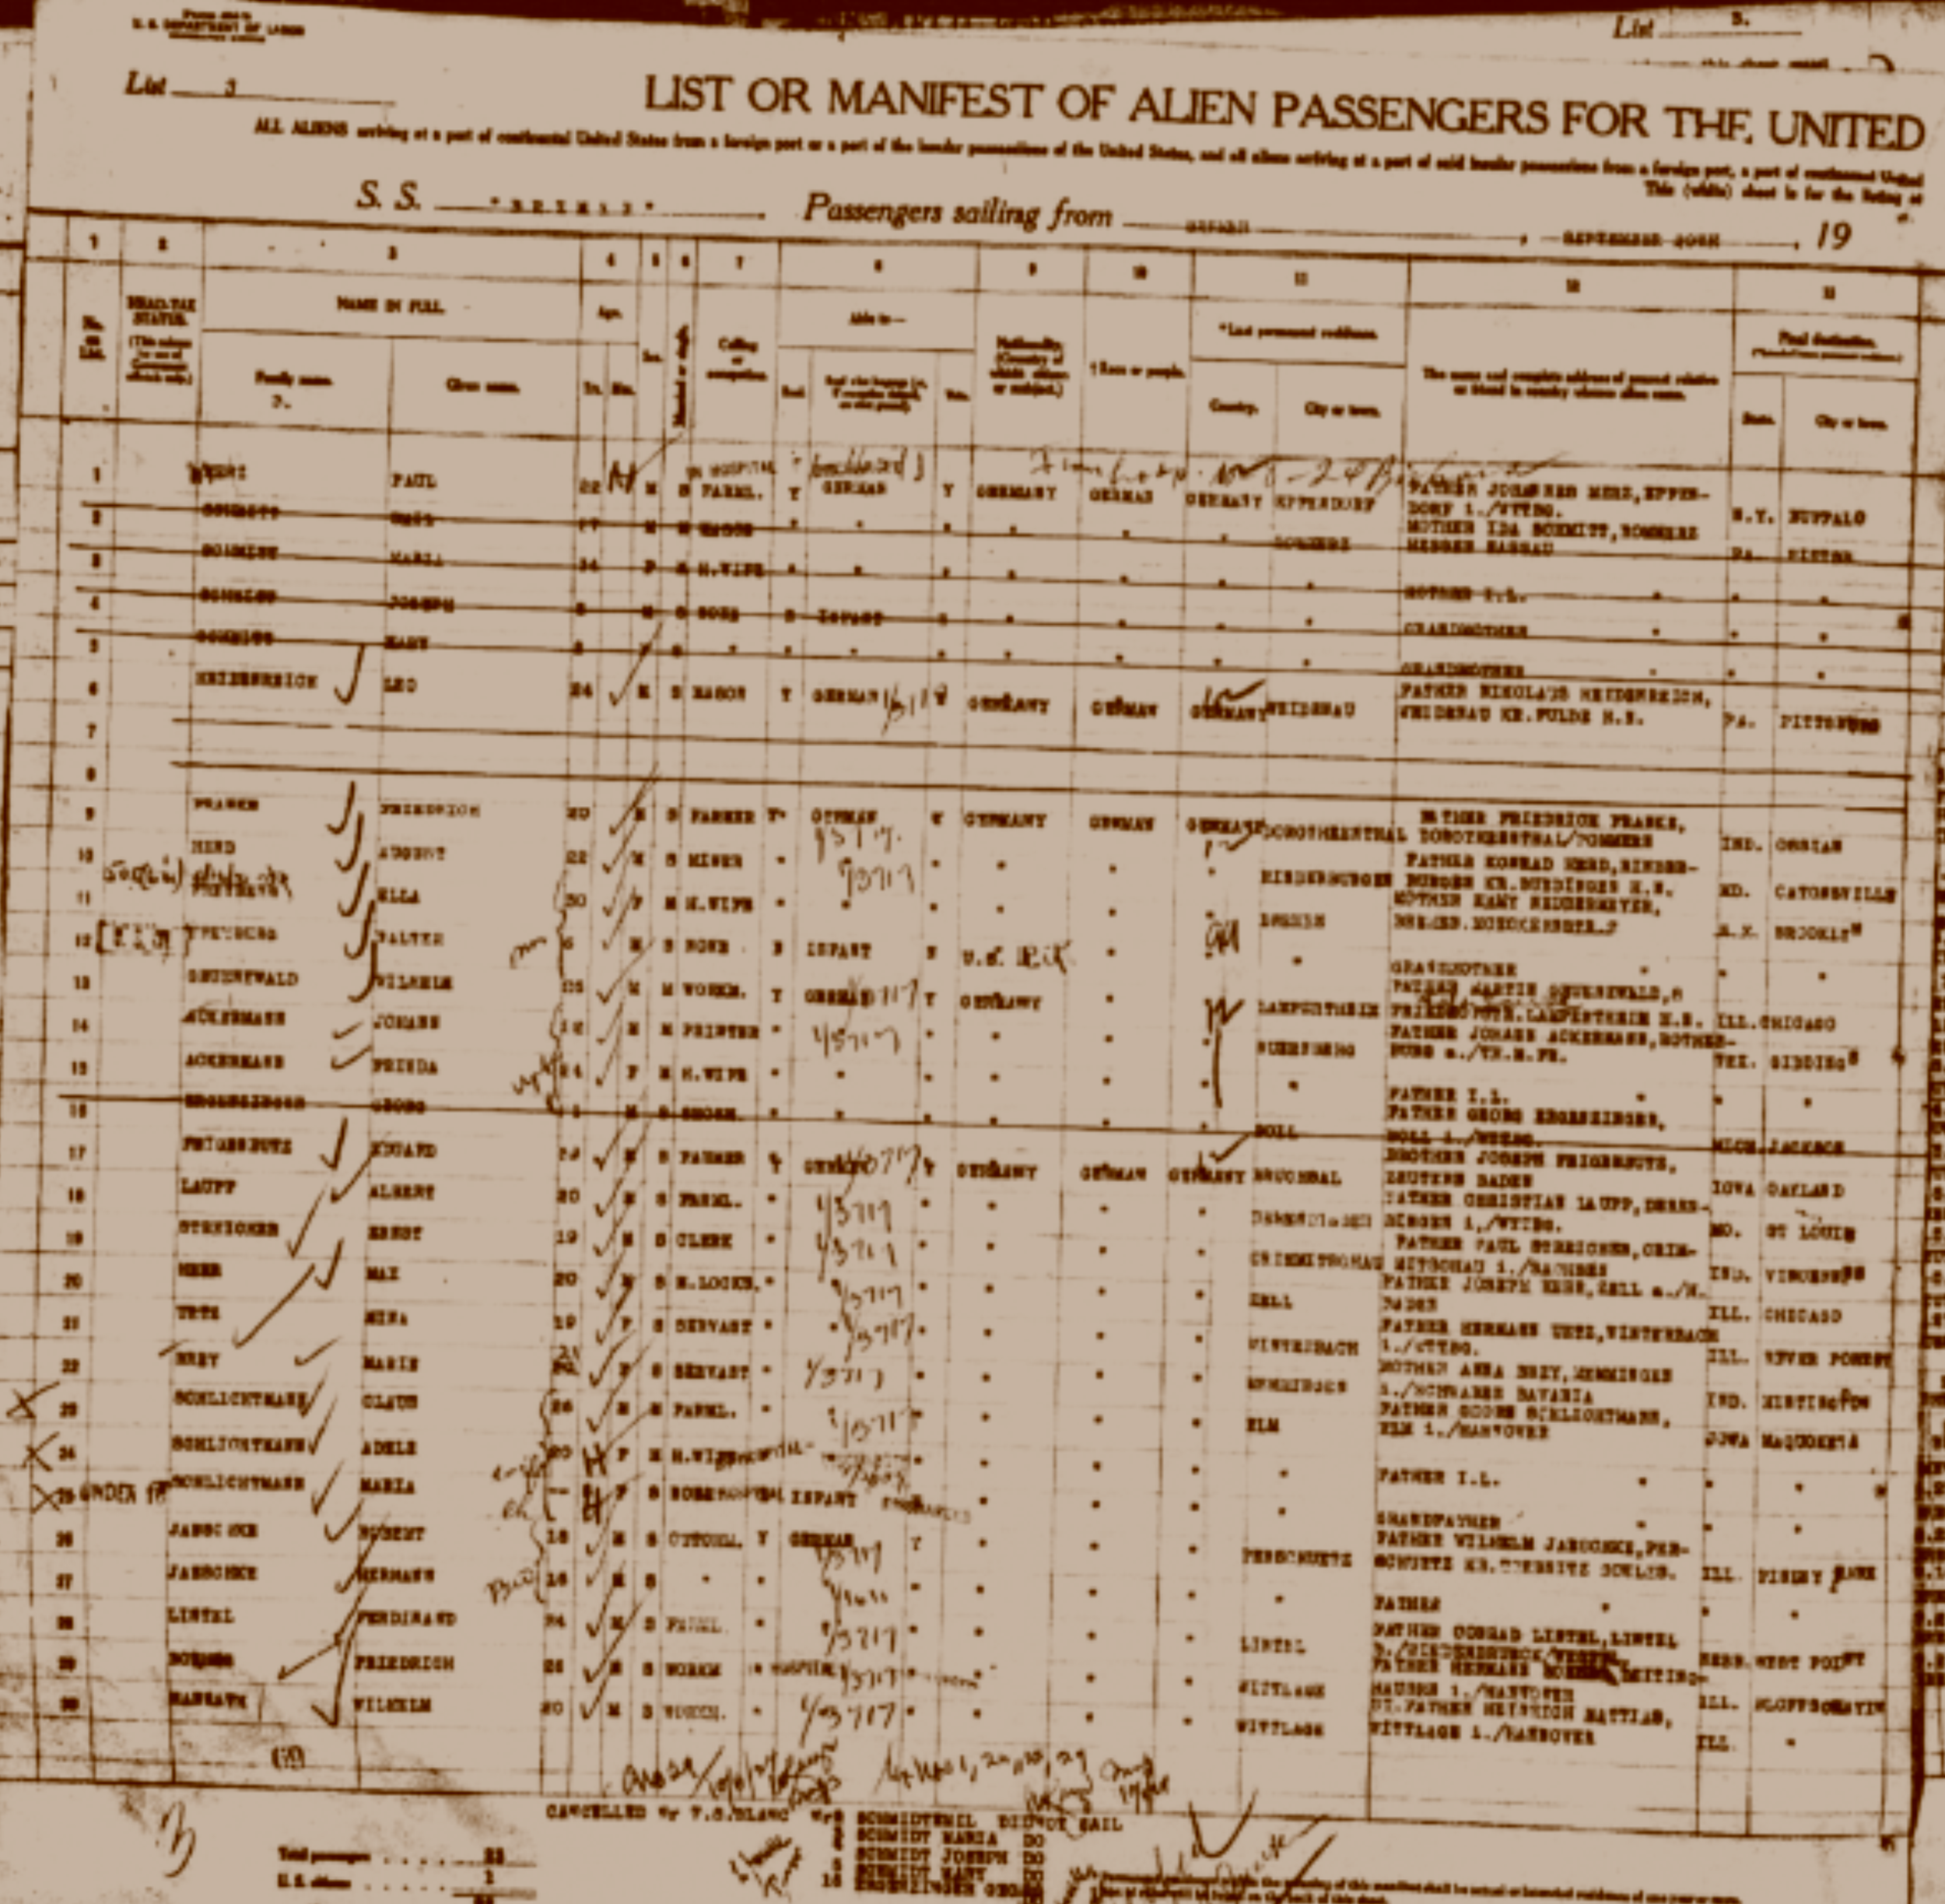 Ship manifest listing Hans and Frieda Ackermann - click to enlarge.